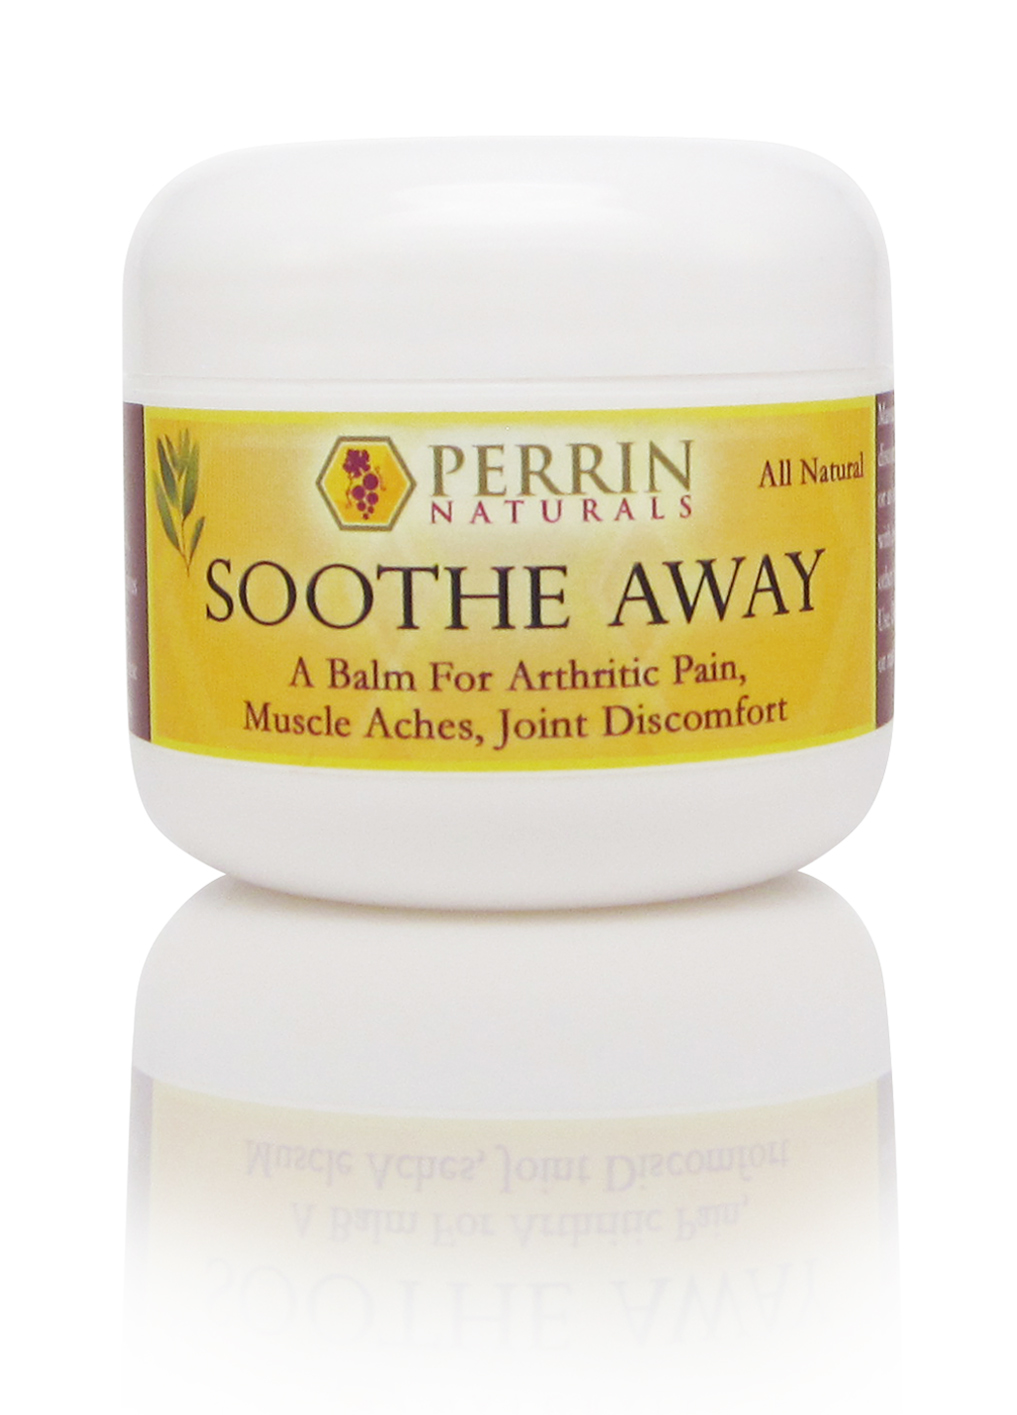 soothe away cream for arthritis